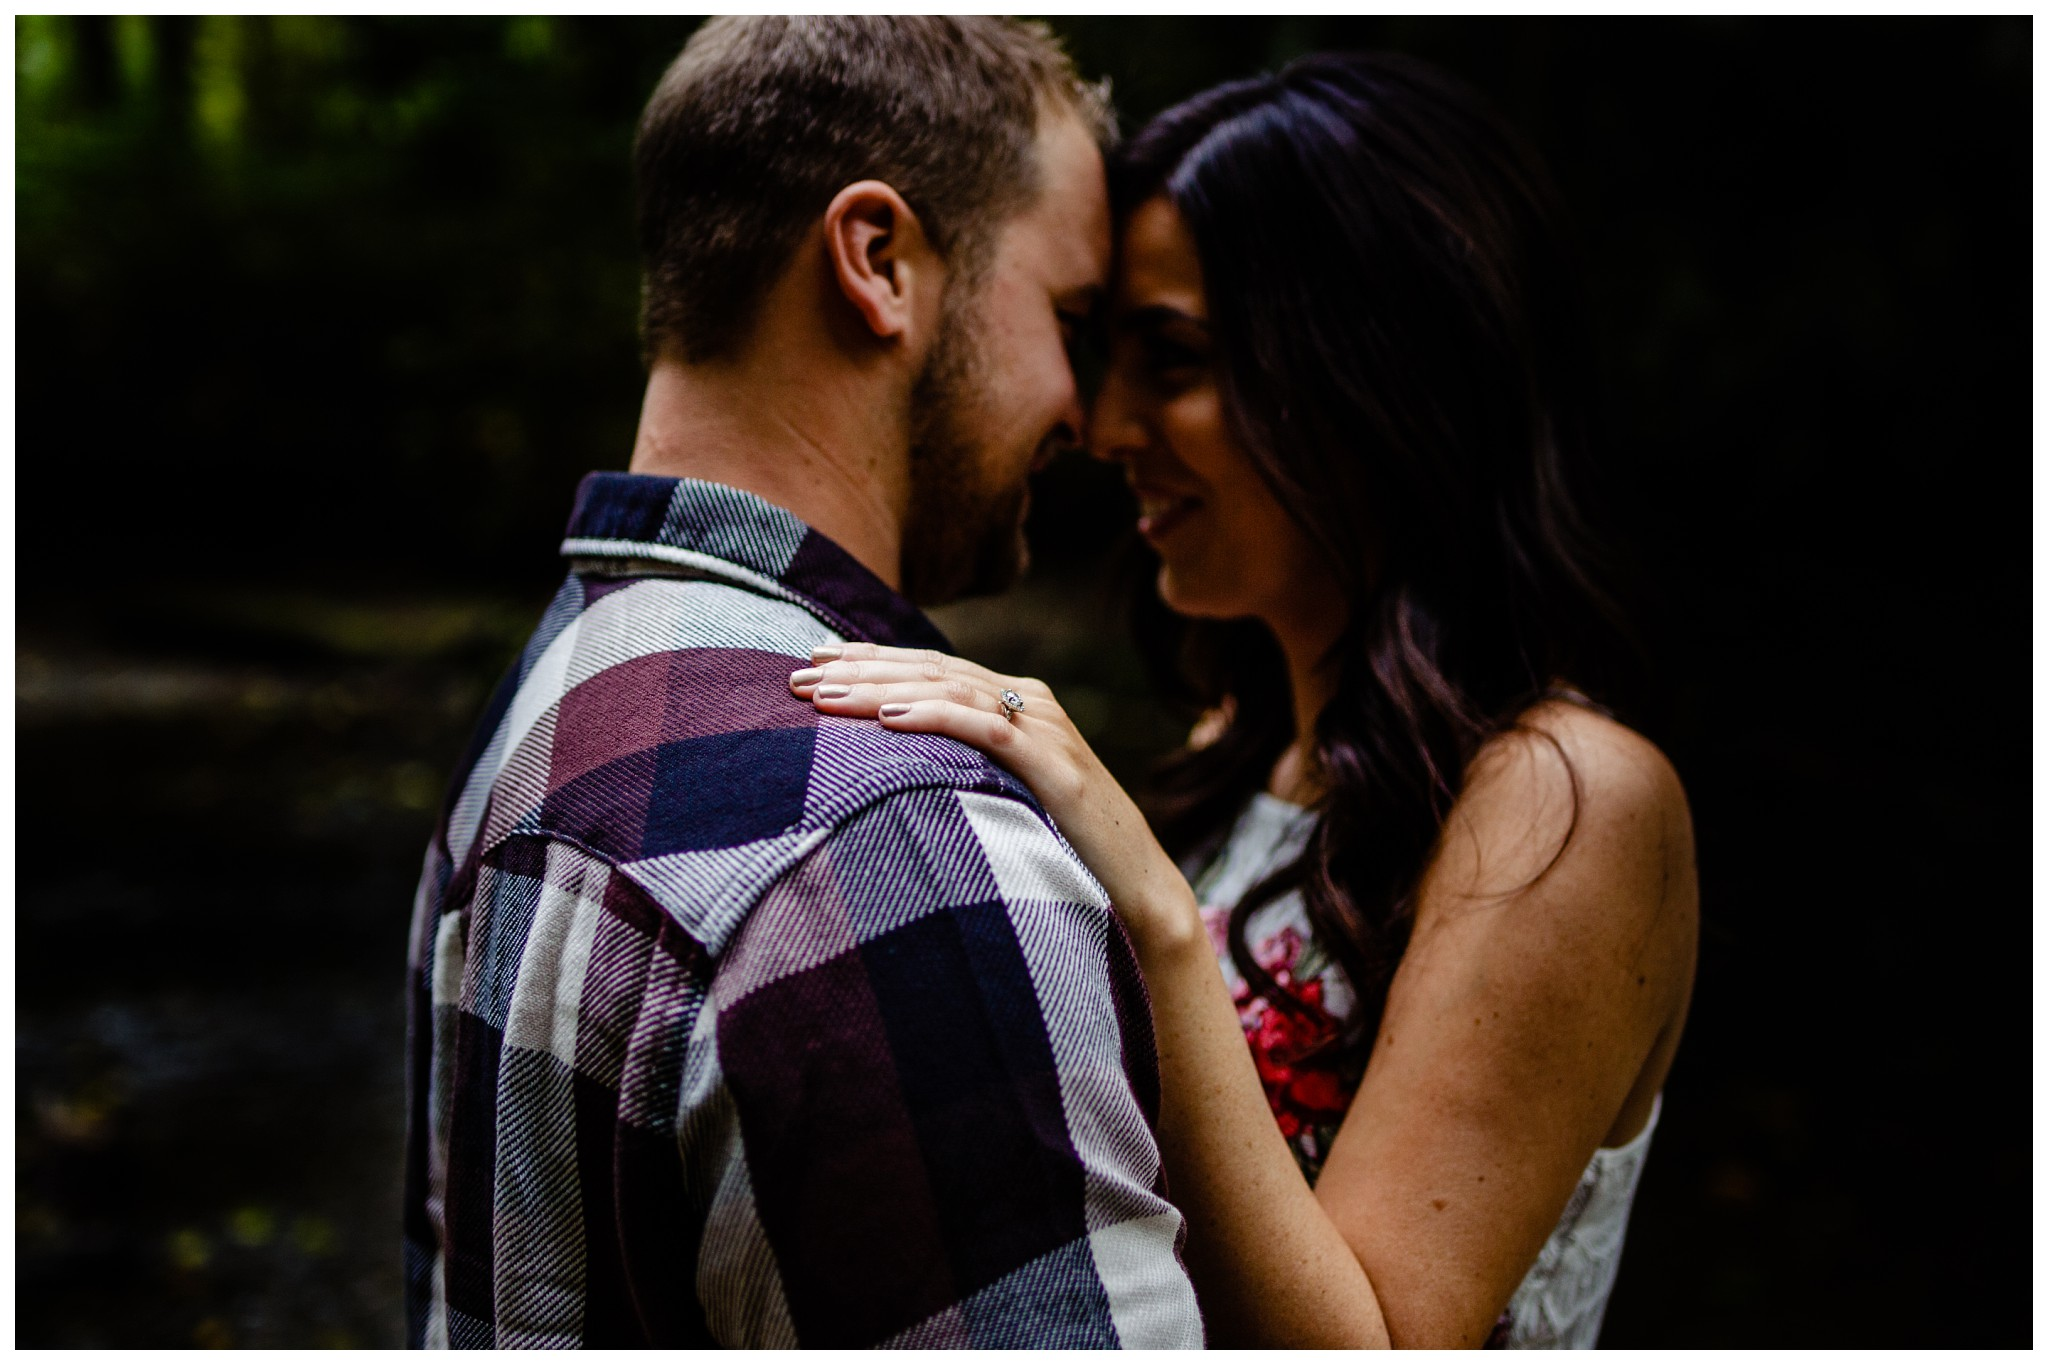 Williams Park Aldergrove Engagement Photographer Moody Fall Couple River Water Romantic Pose Yellow Leaves White Dress Dark_0003.jpg